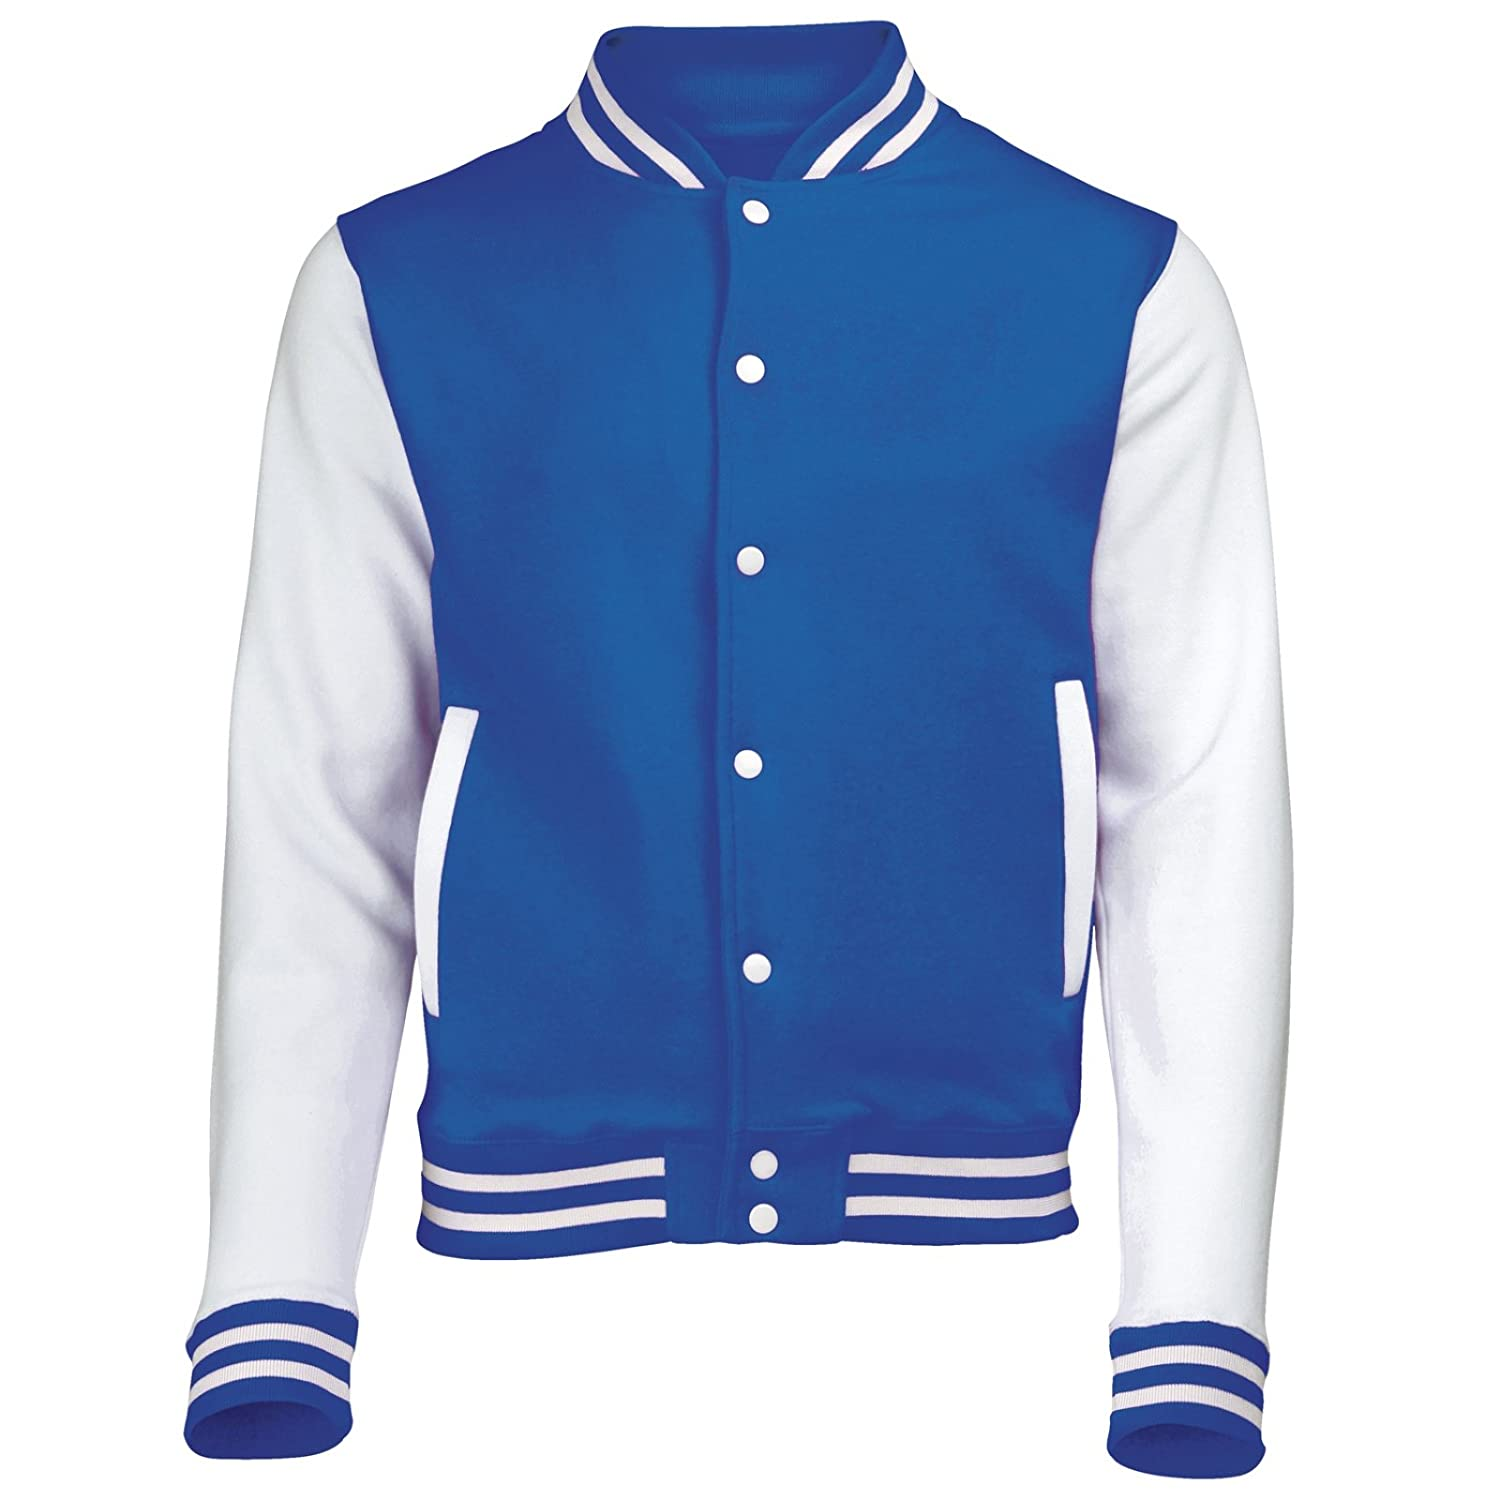 KIDS VARSITY COLLEGE JACKET (Royal Blue / White) By 123t Fonfella